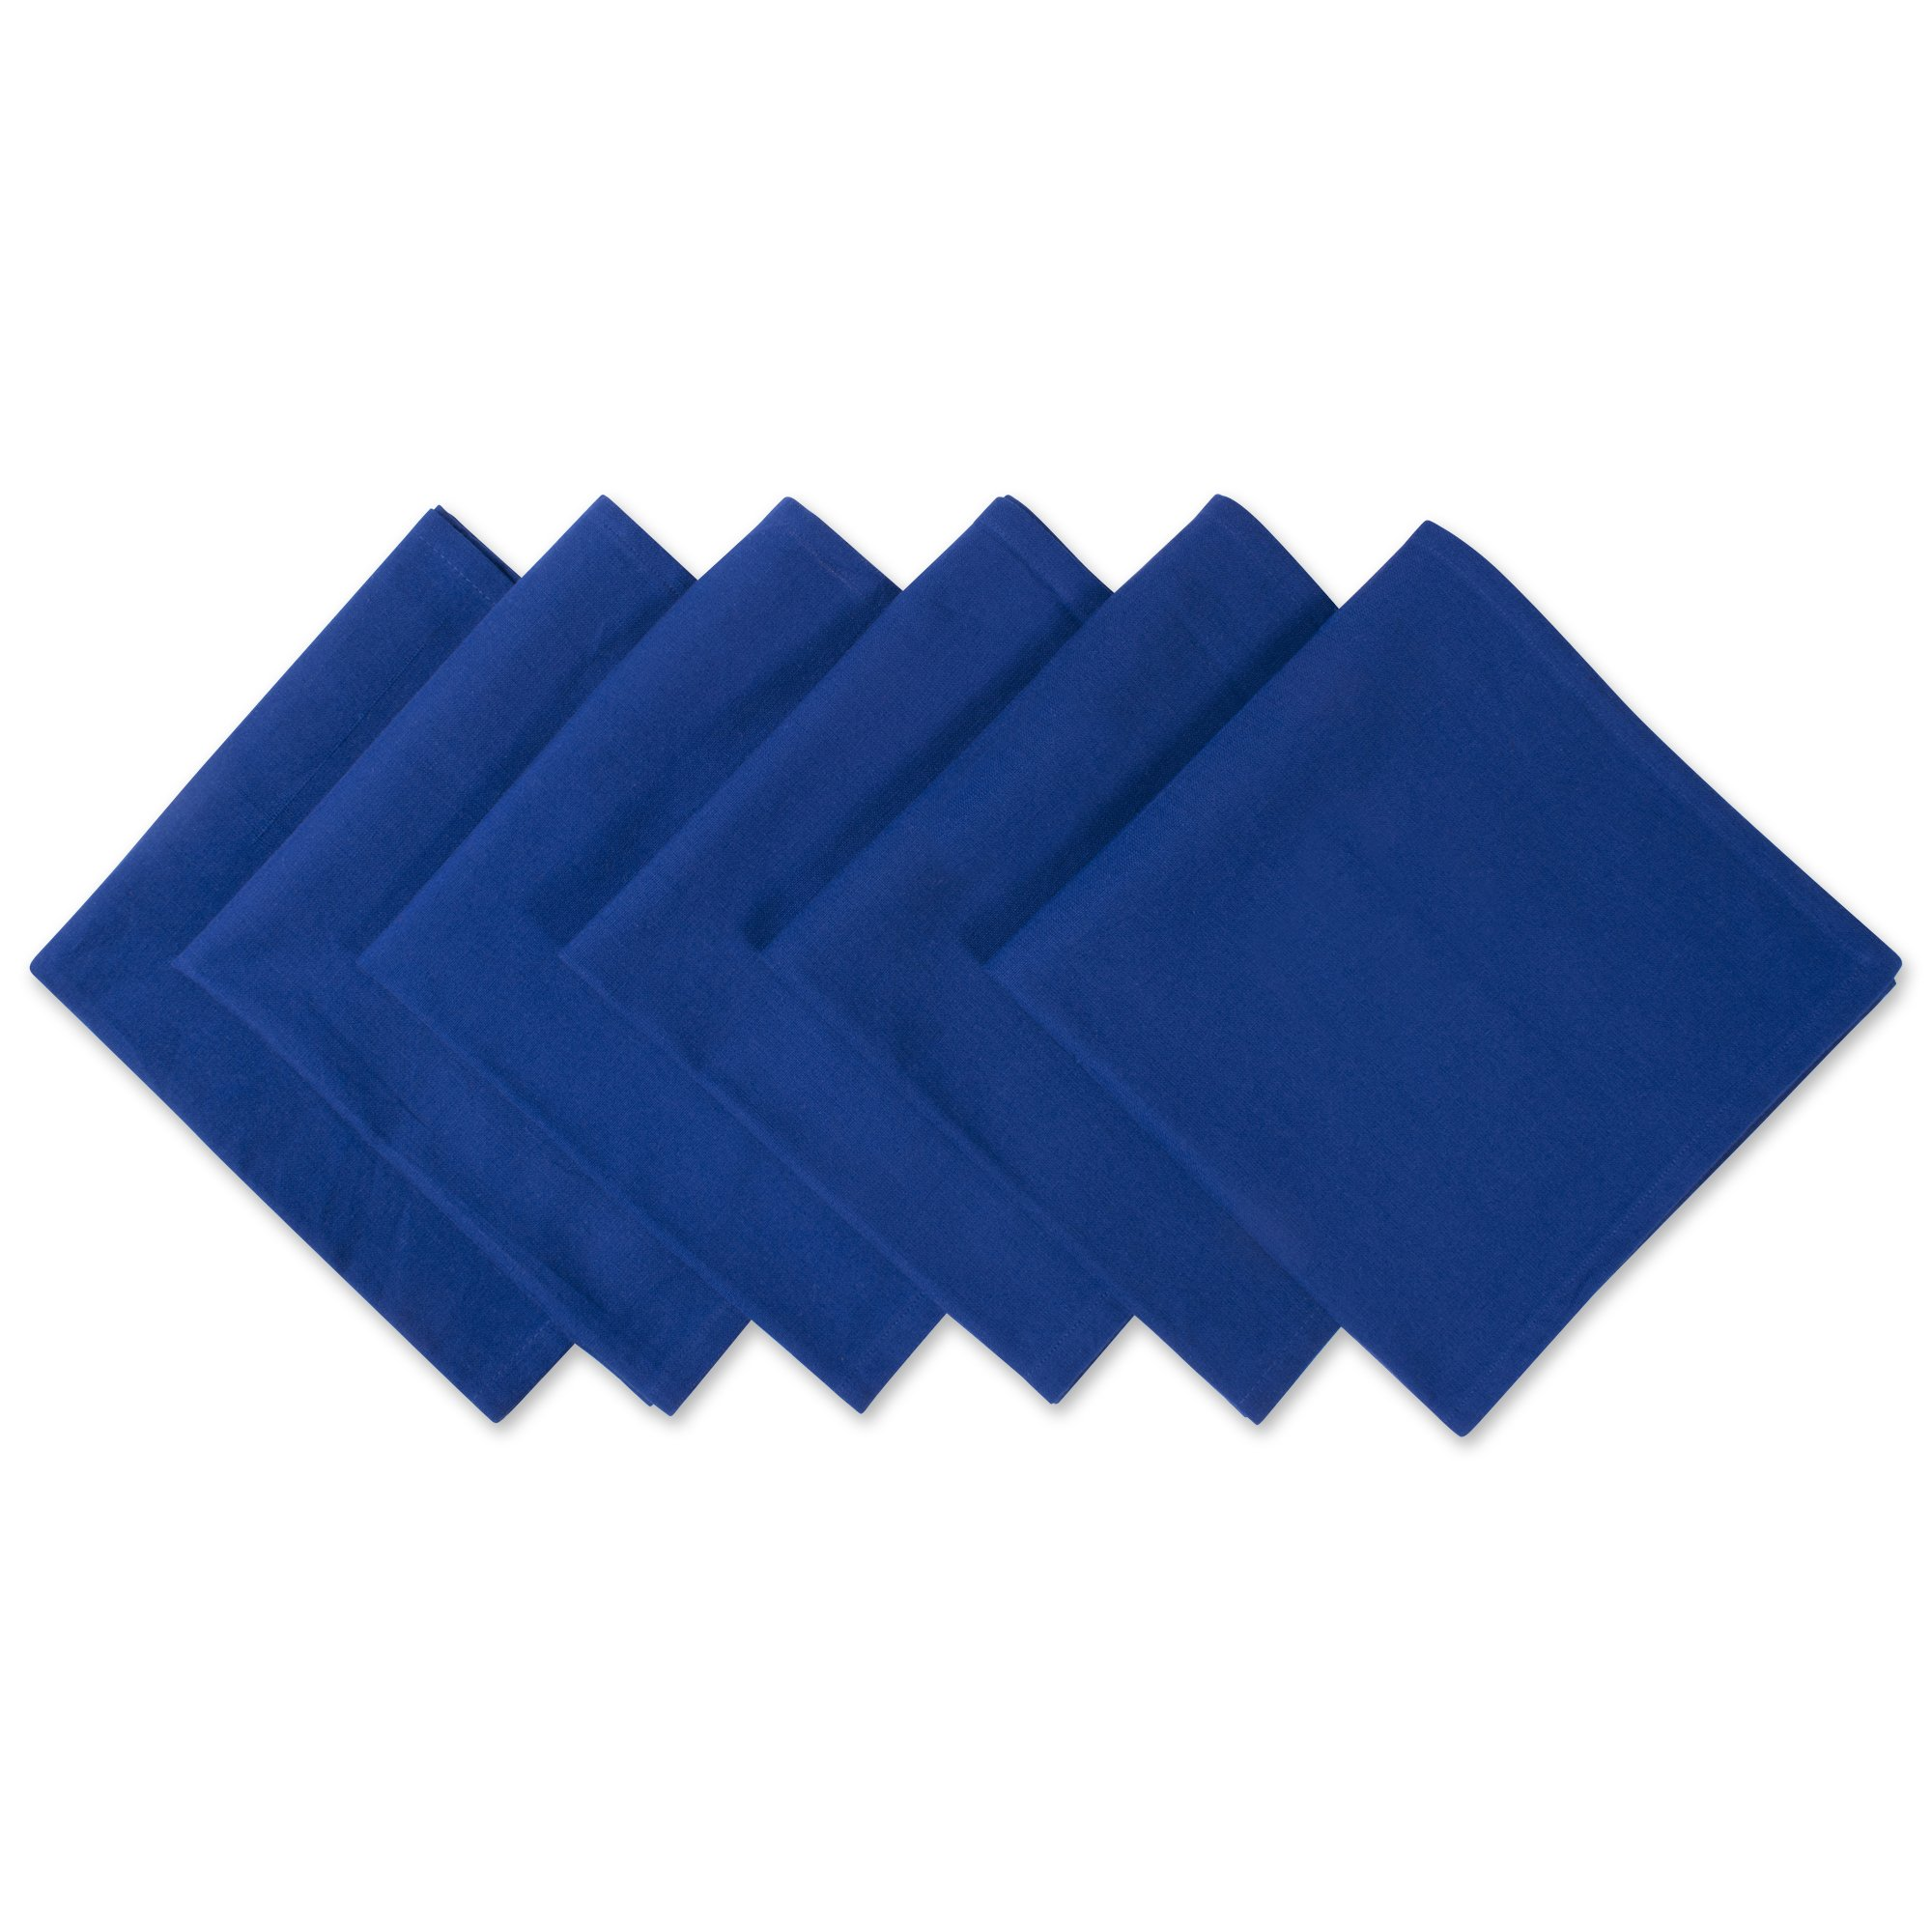 DII 100% Cotton Cloth Napkins, Oversized 20x20'' Dinner Napkins, For Basic Everyday Use, Banquets, Weddings, Events, or Family Gatherings - Set of 6, Nautical Blue by DII